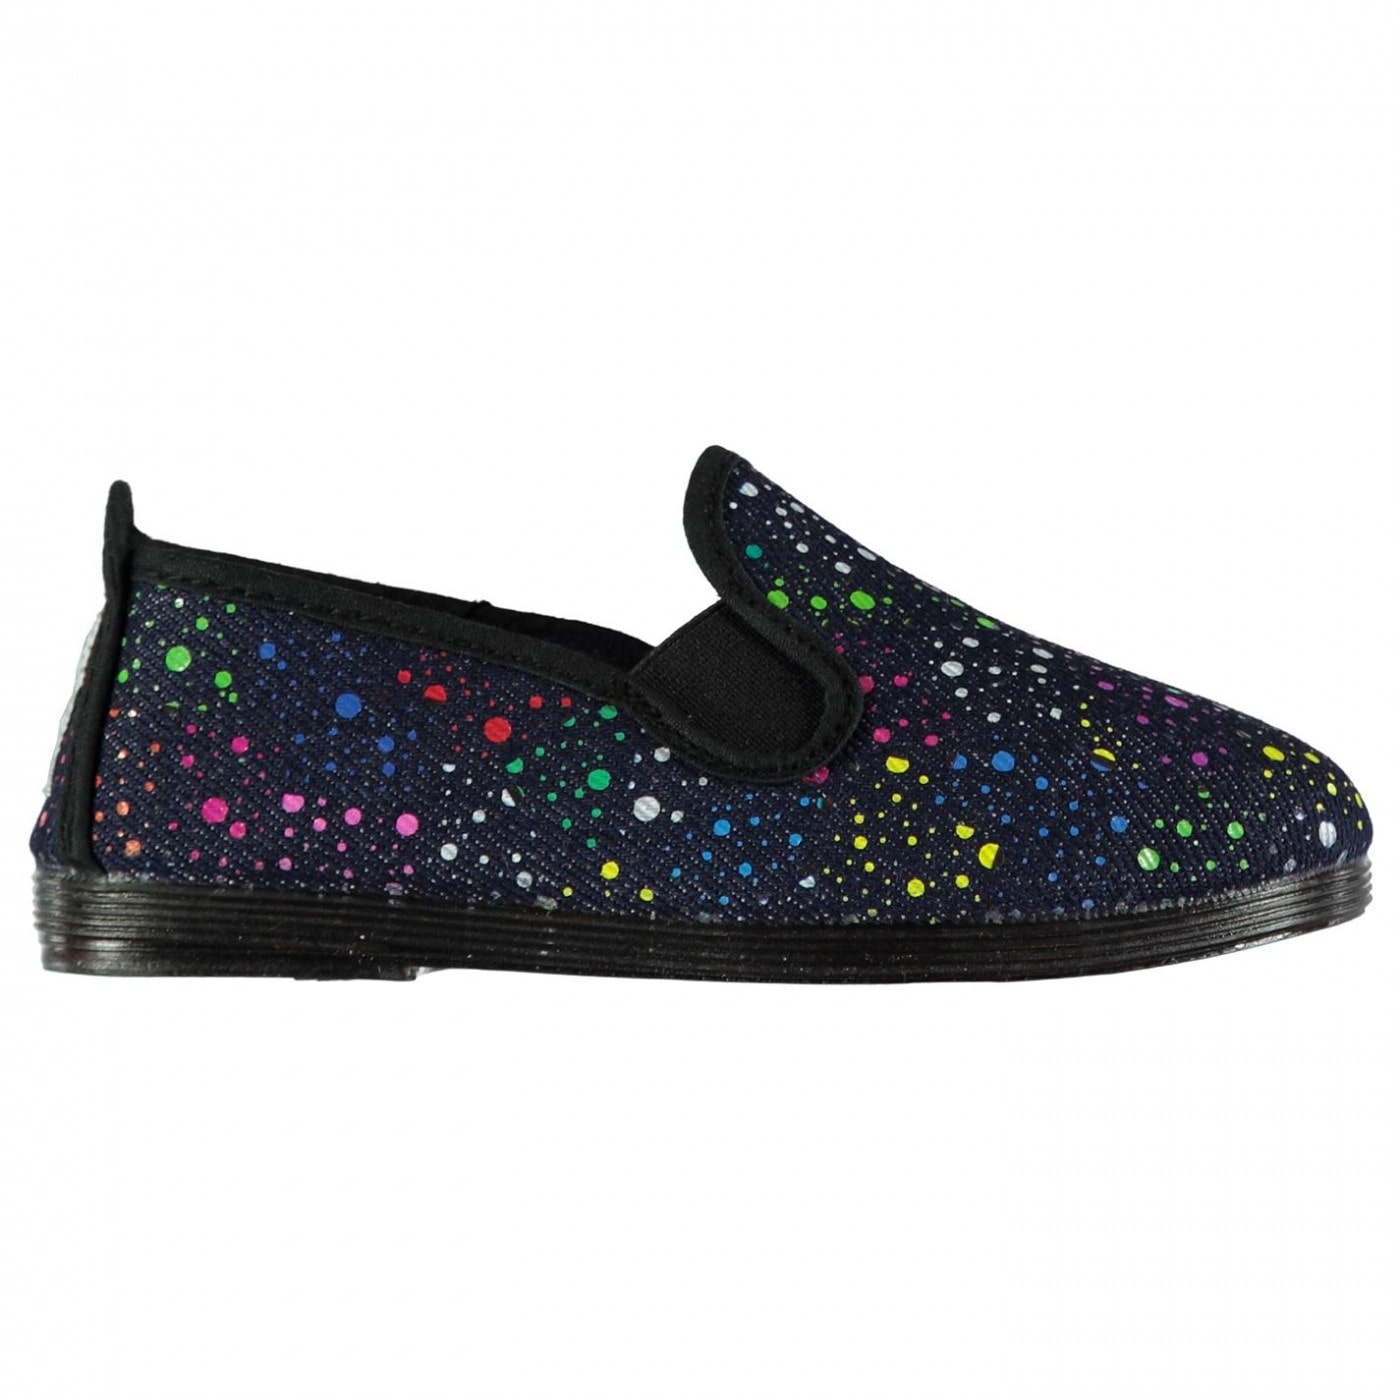 Flossy Topin Slip On Plimsolls